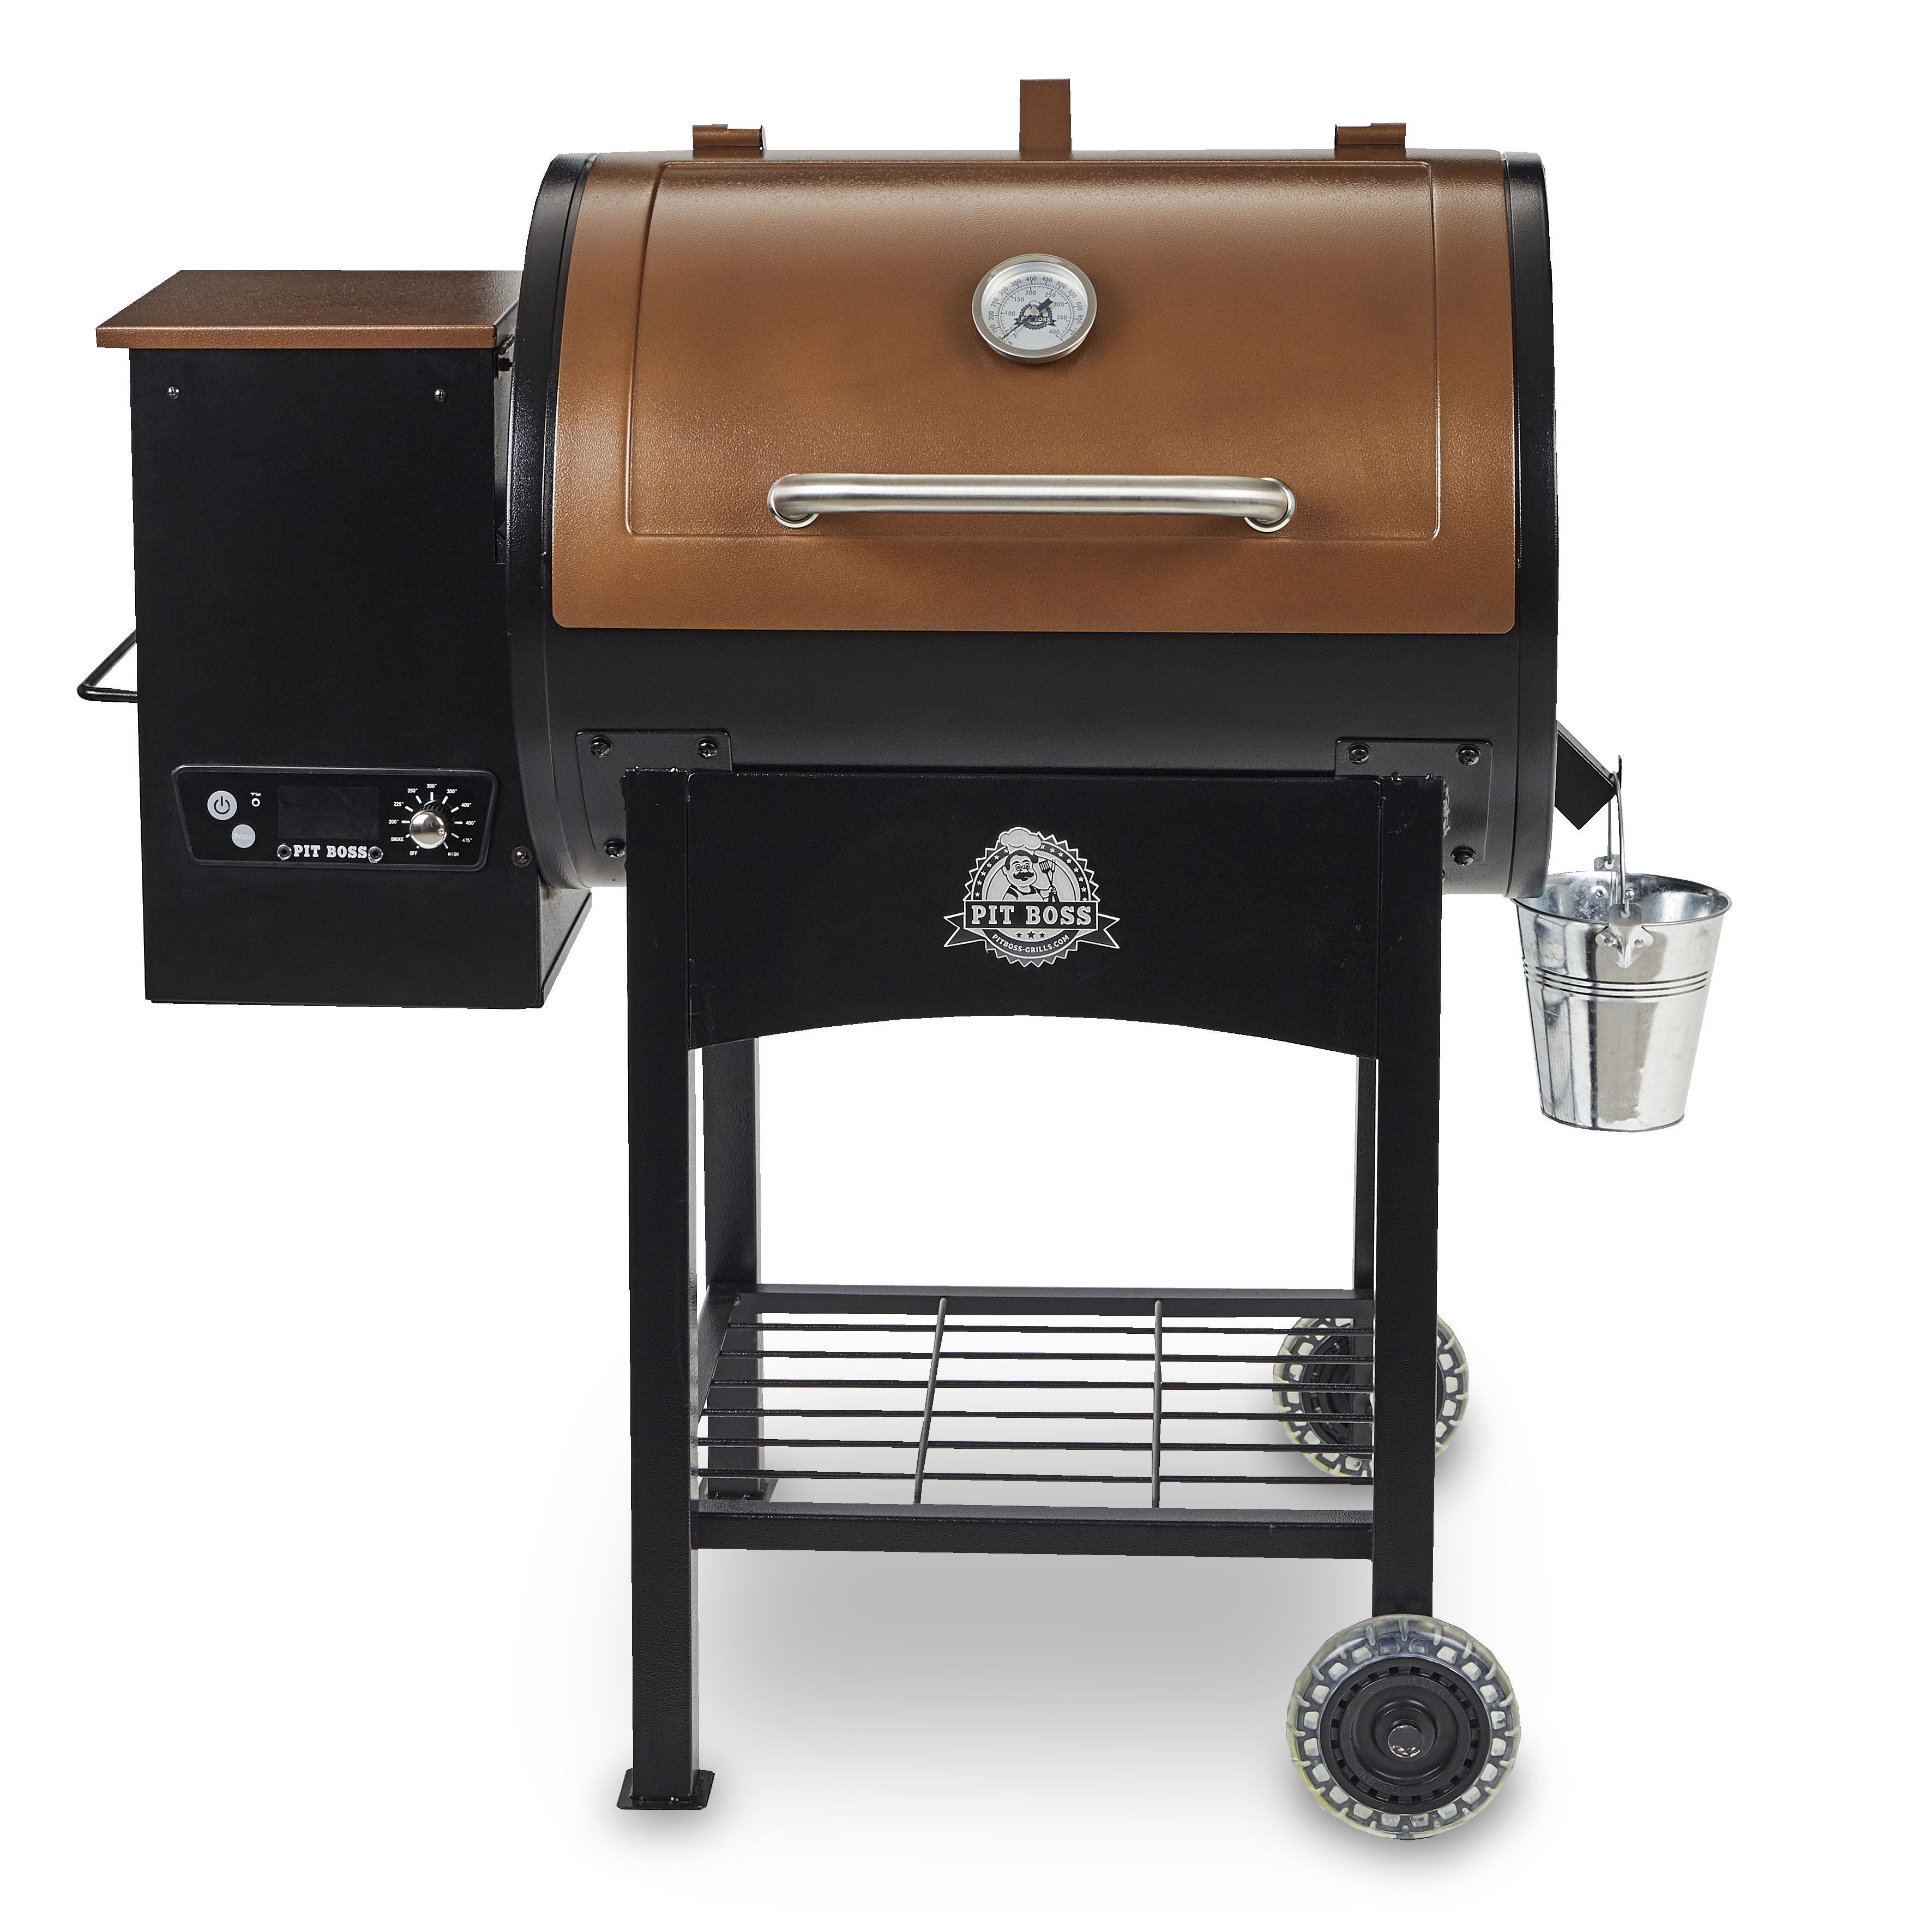 Pit Boss Classic 700 sq. in. Wood Fired Pellet Grill w/ Flame Broiler